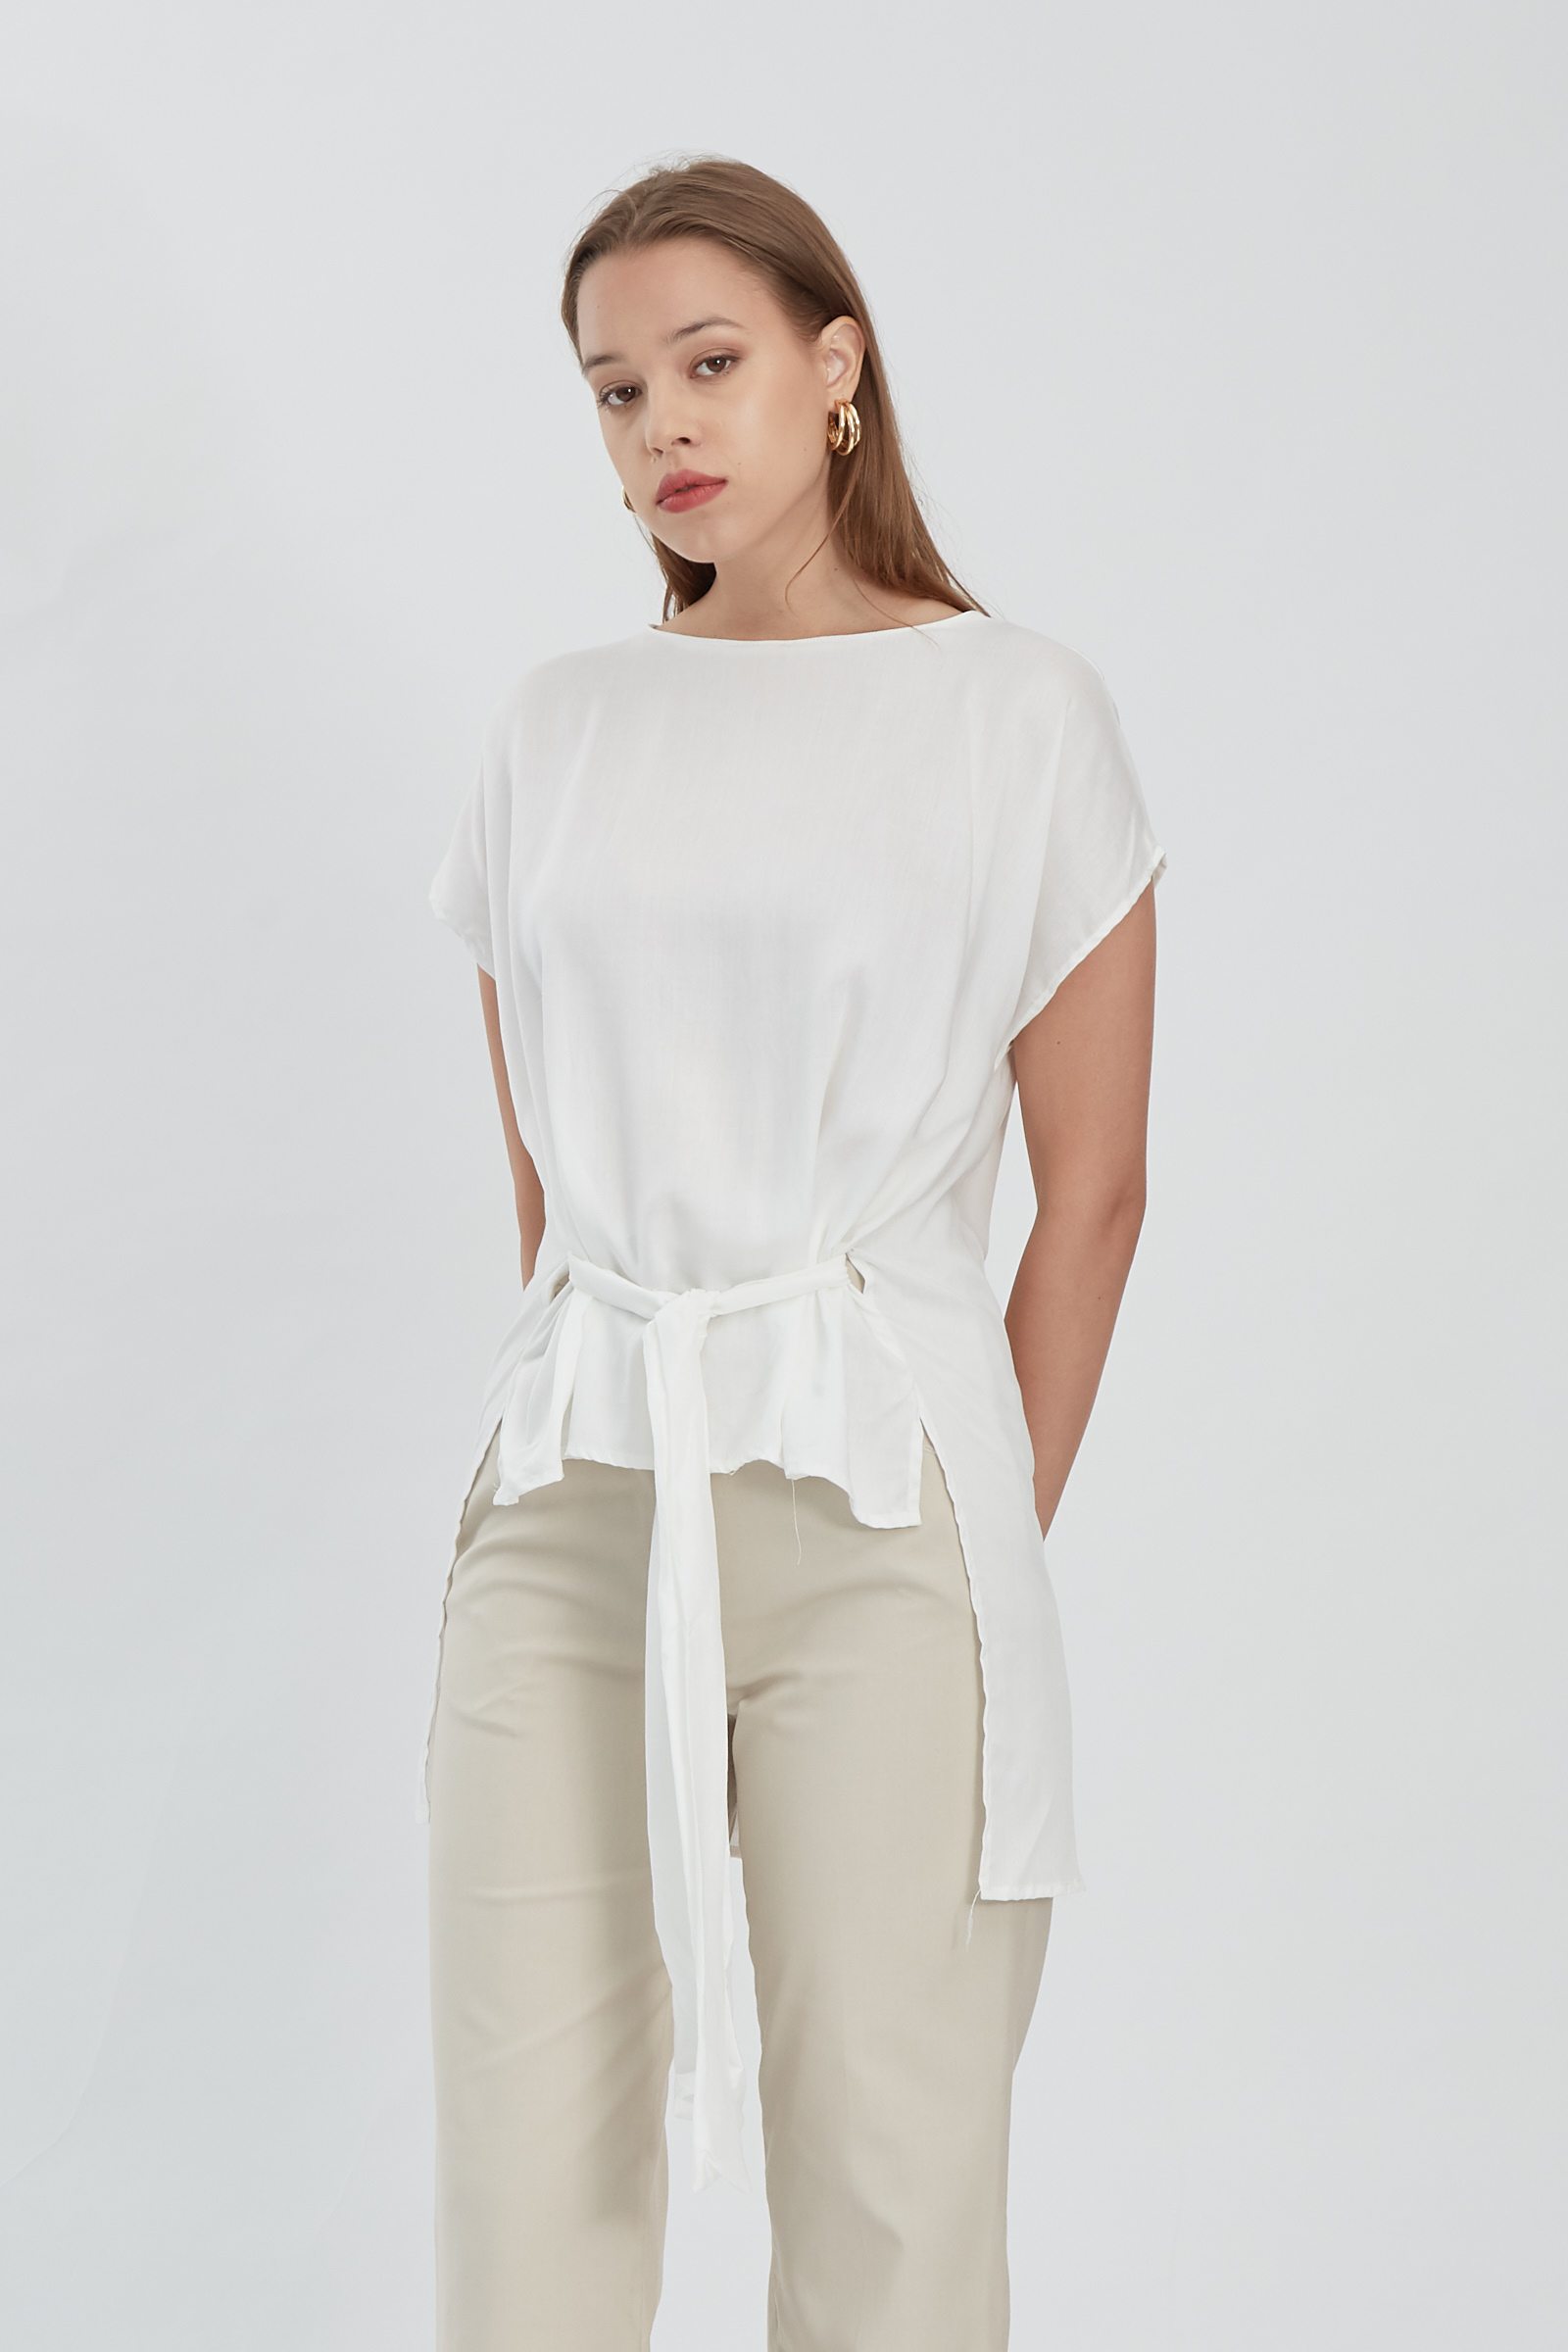 Shopatvelvet Kara Top White